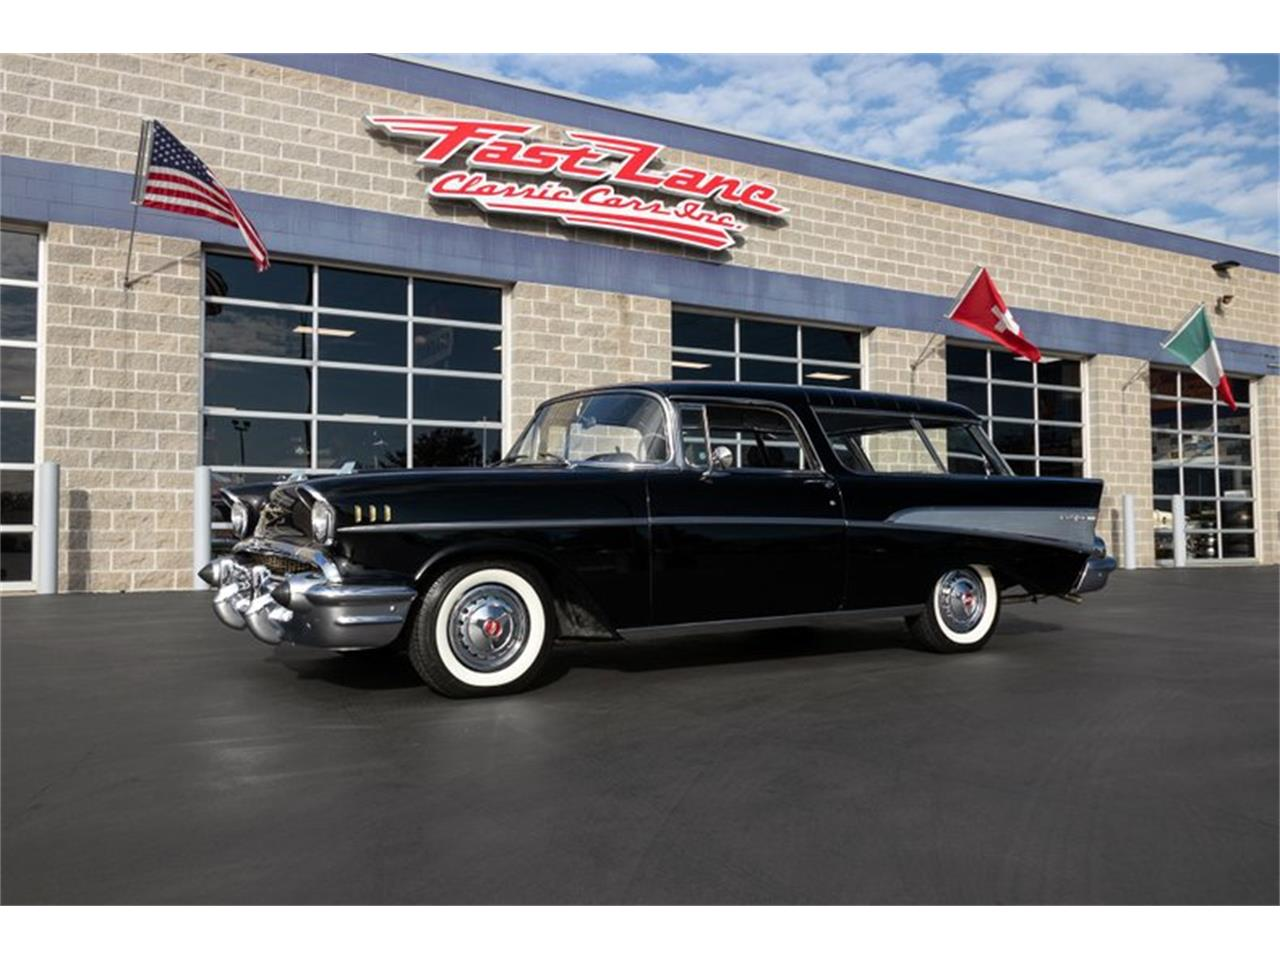 1957 Chevrolet Nomad (CC-1373956) for sale in St. Charles, Missouri